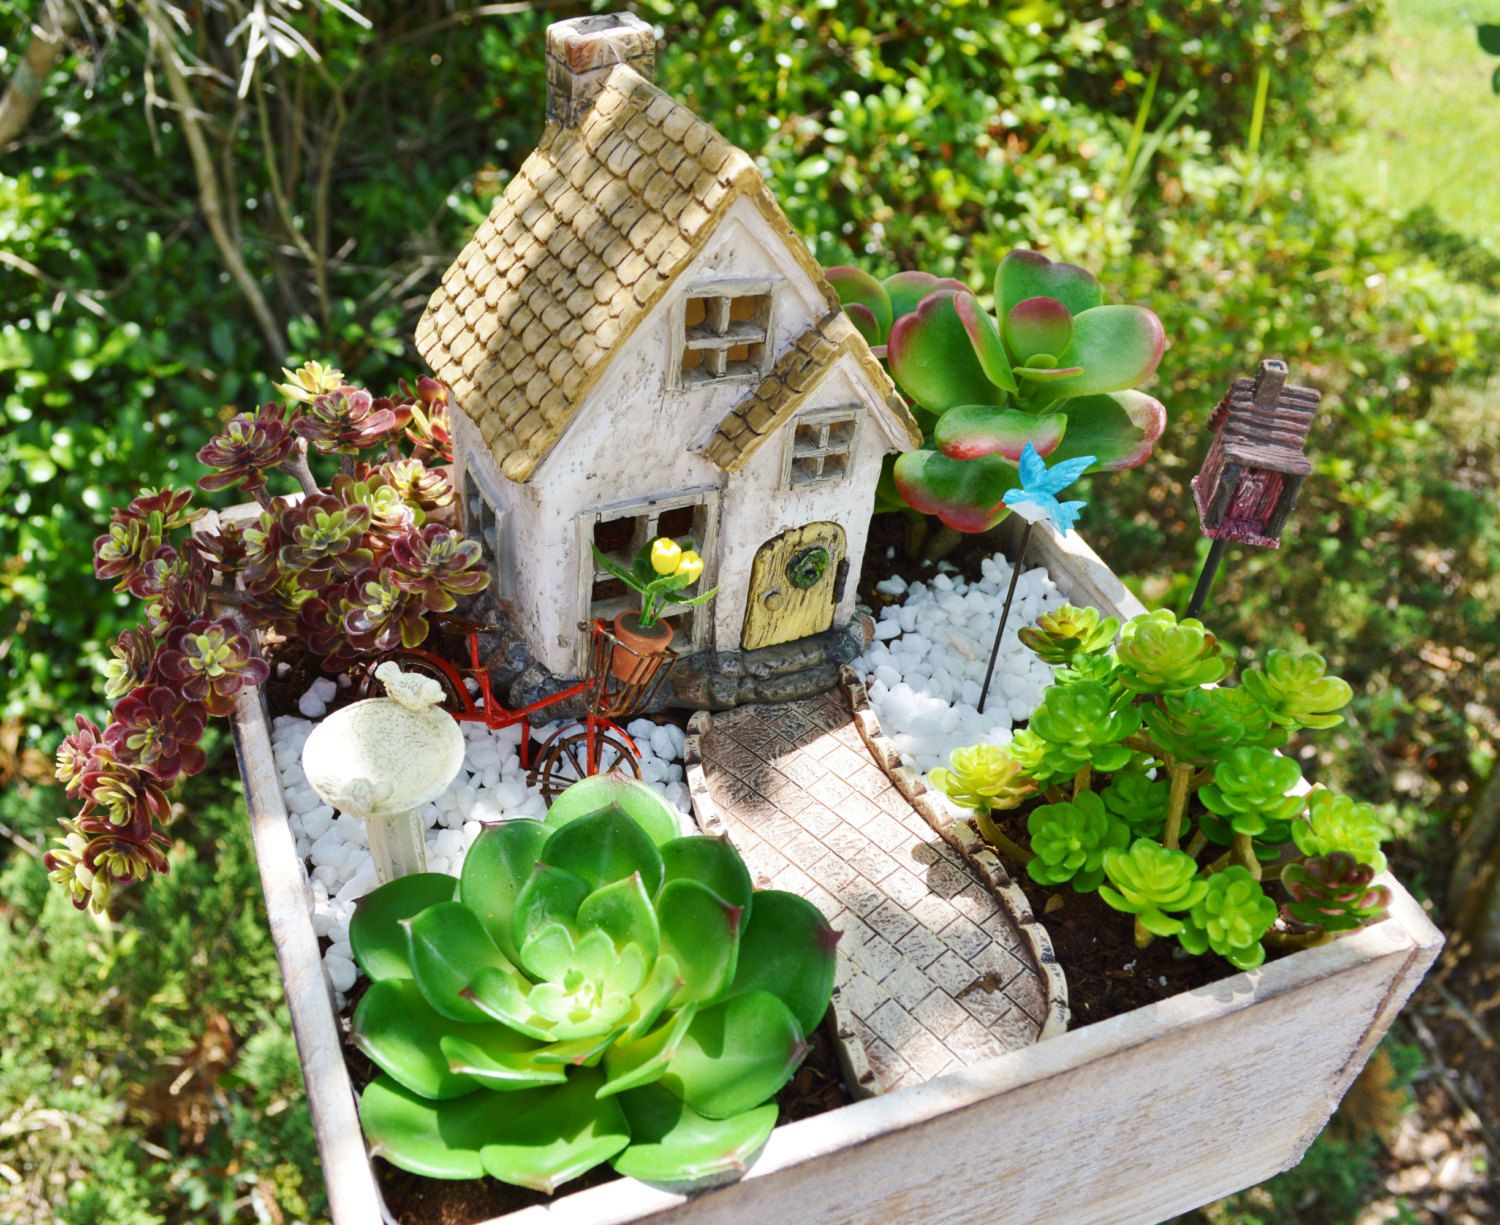 Small Crop Of In House Herb Garden Kit